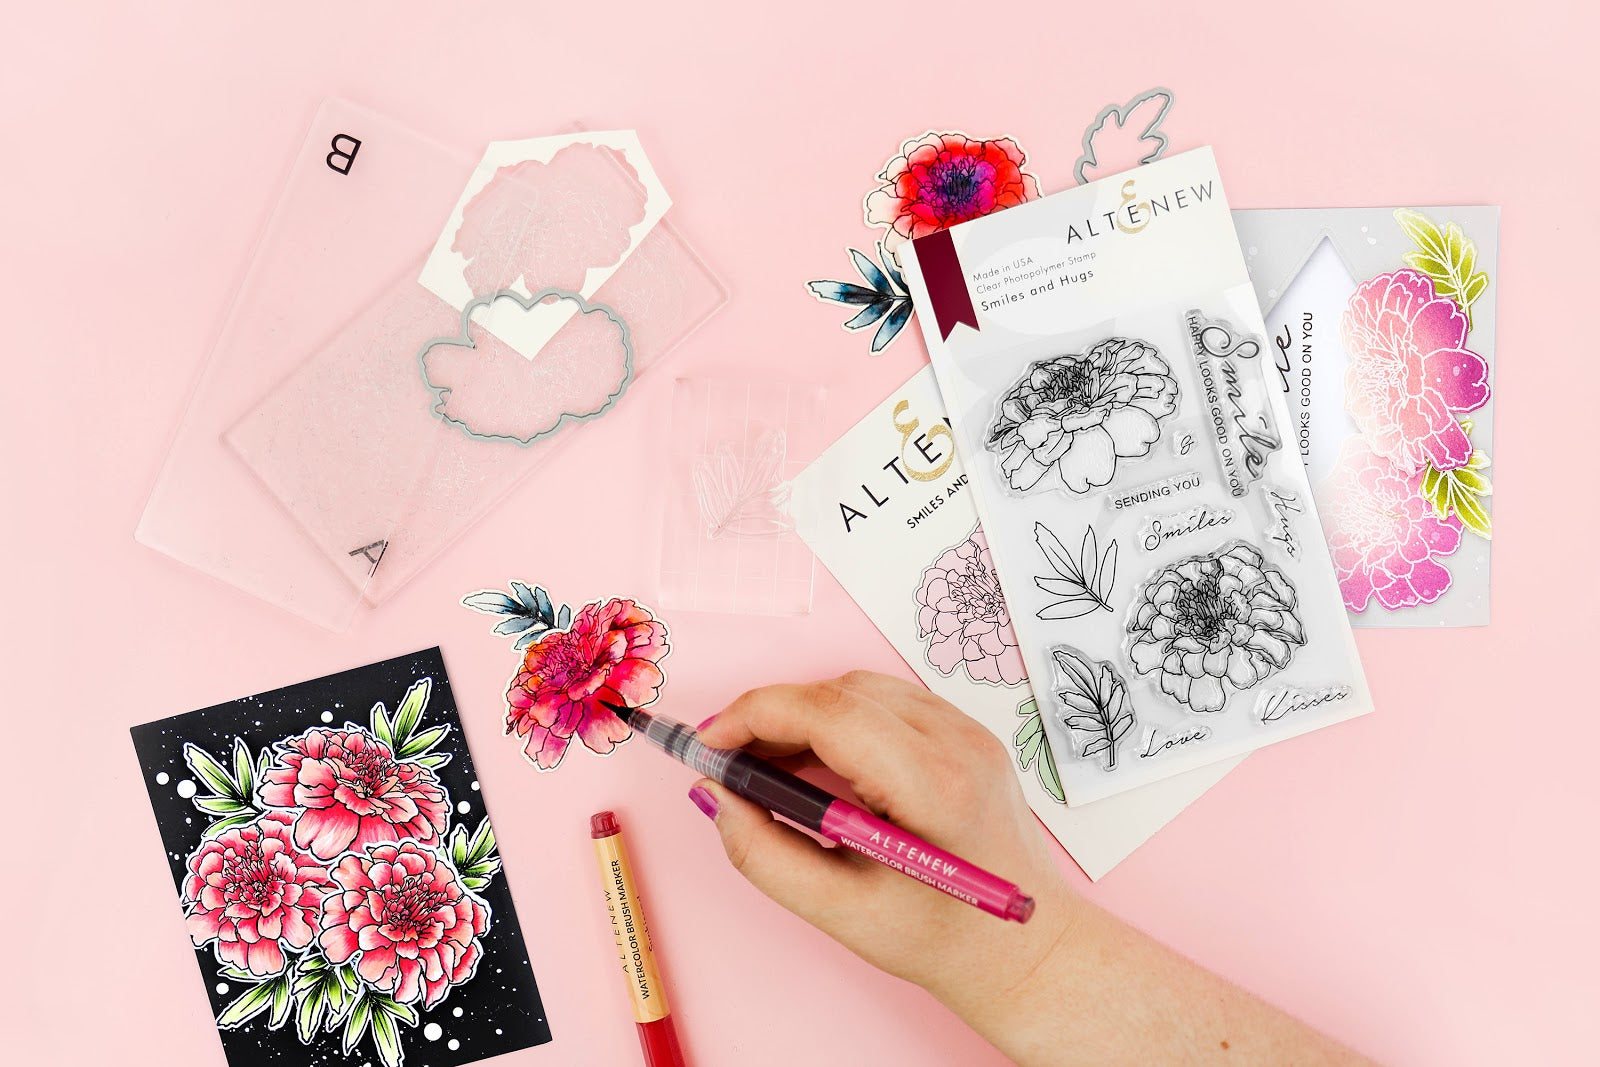 handmade floral card from Altenew